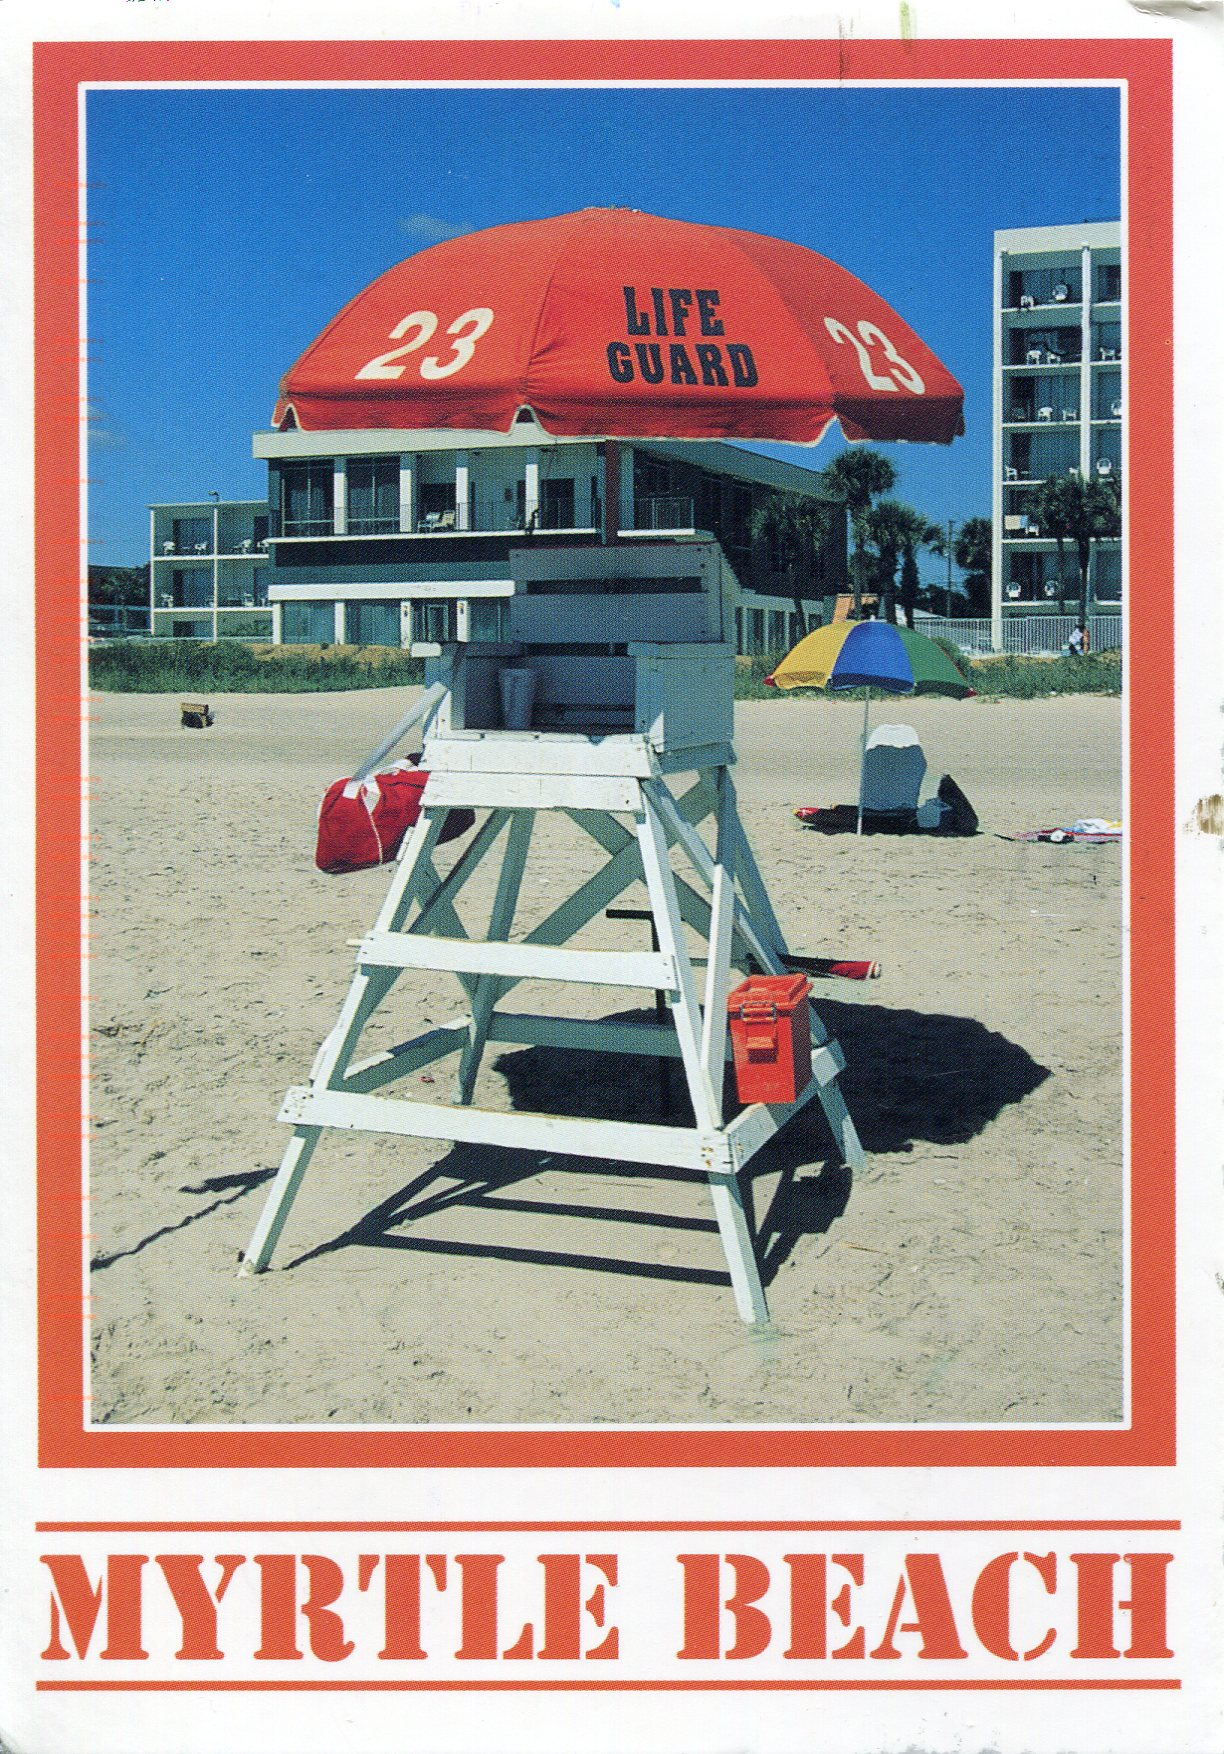 Life Guard Chair in Myrtle Beach